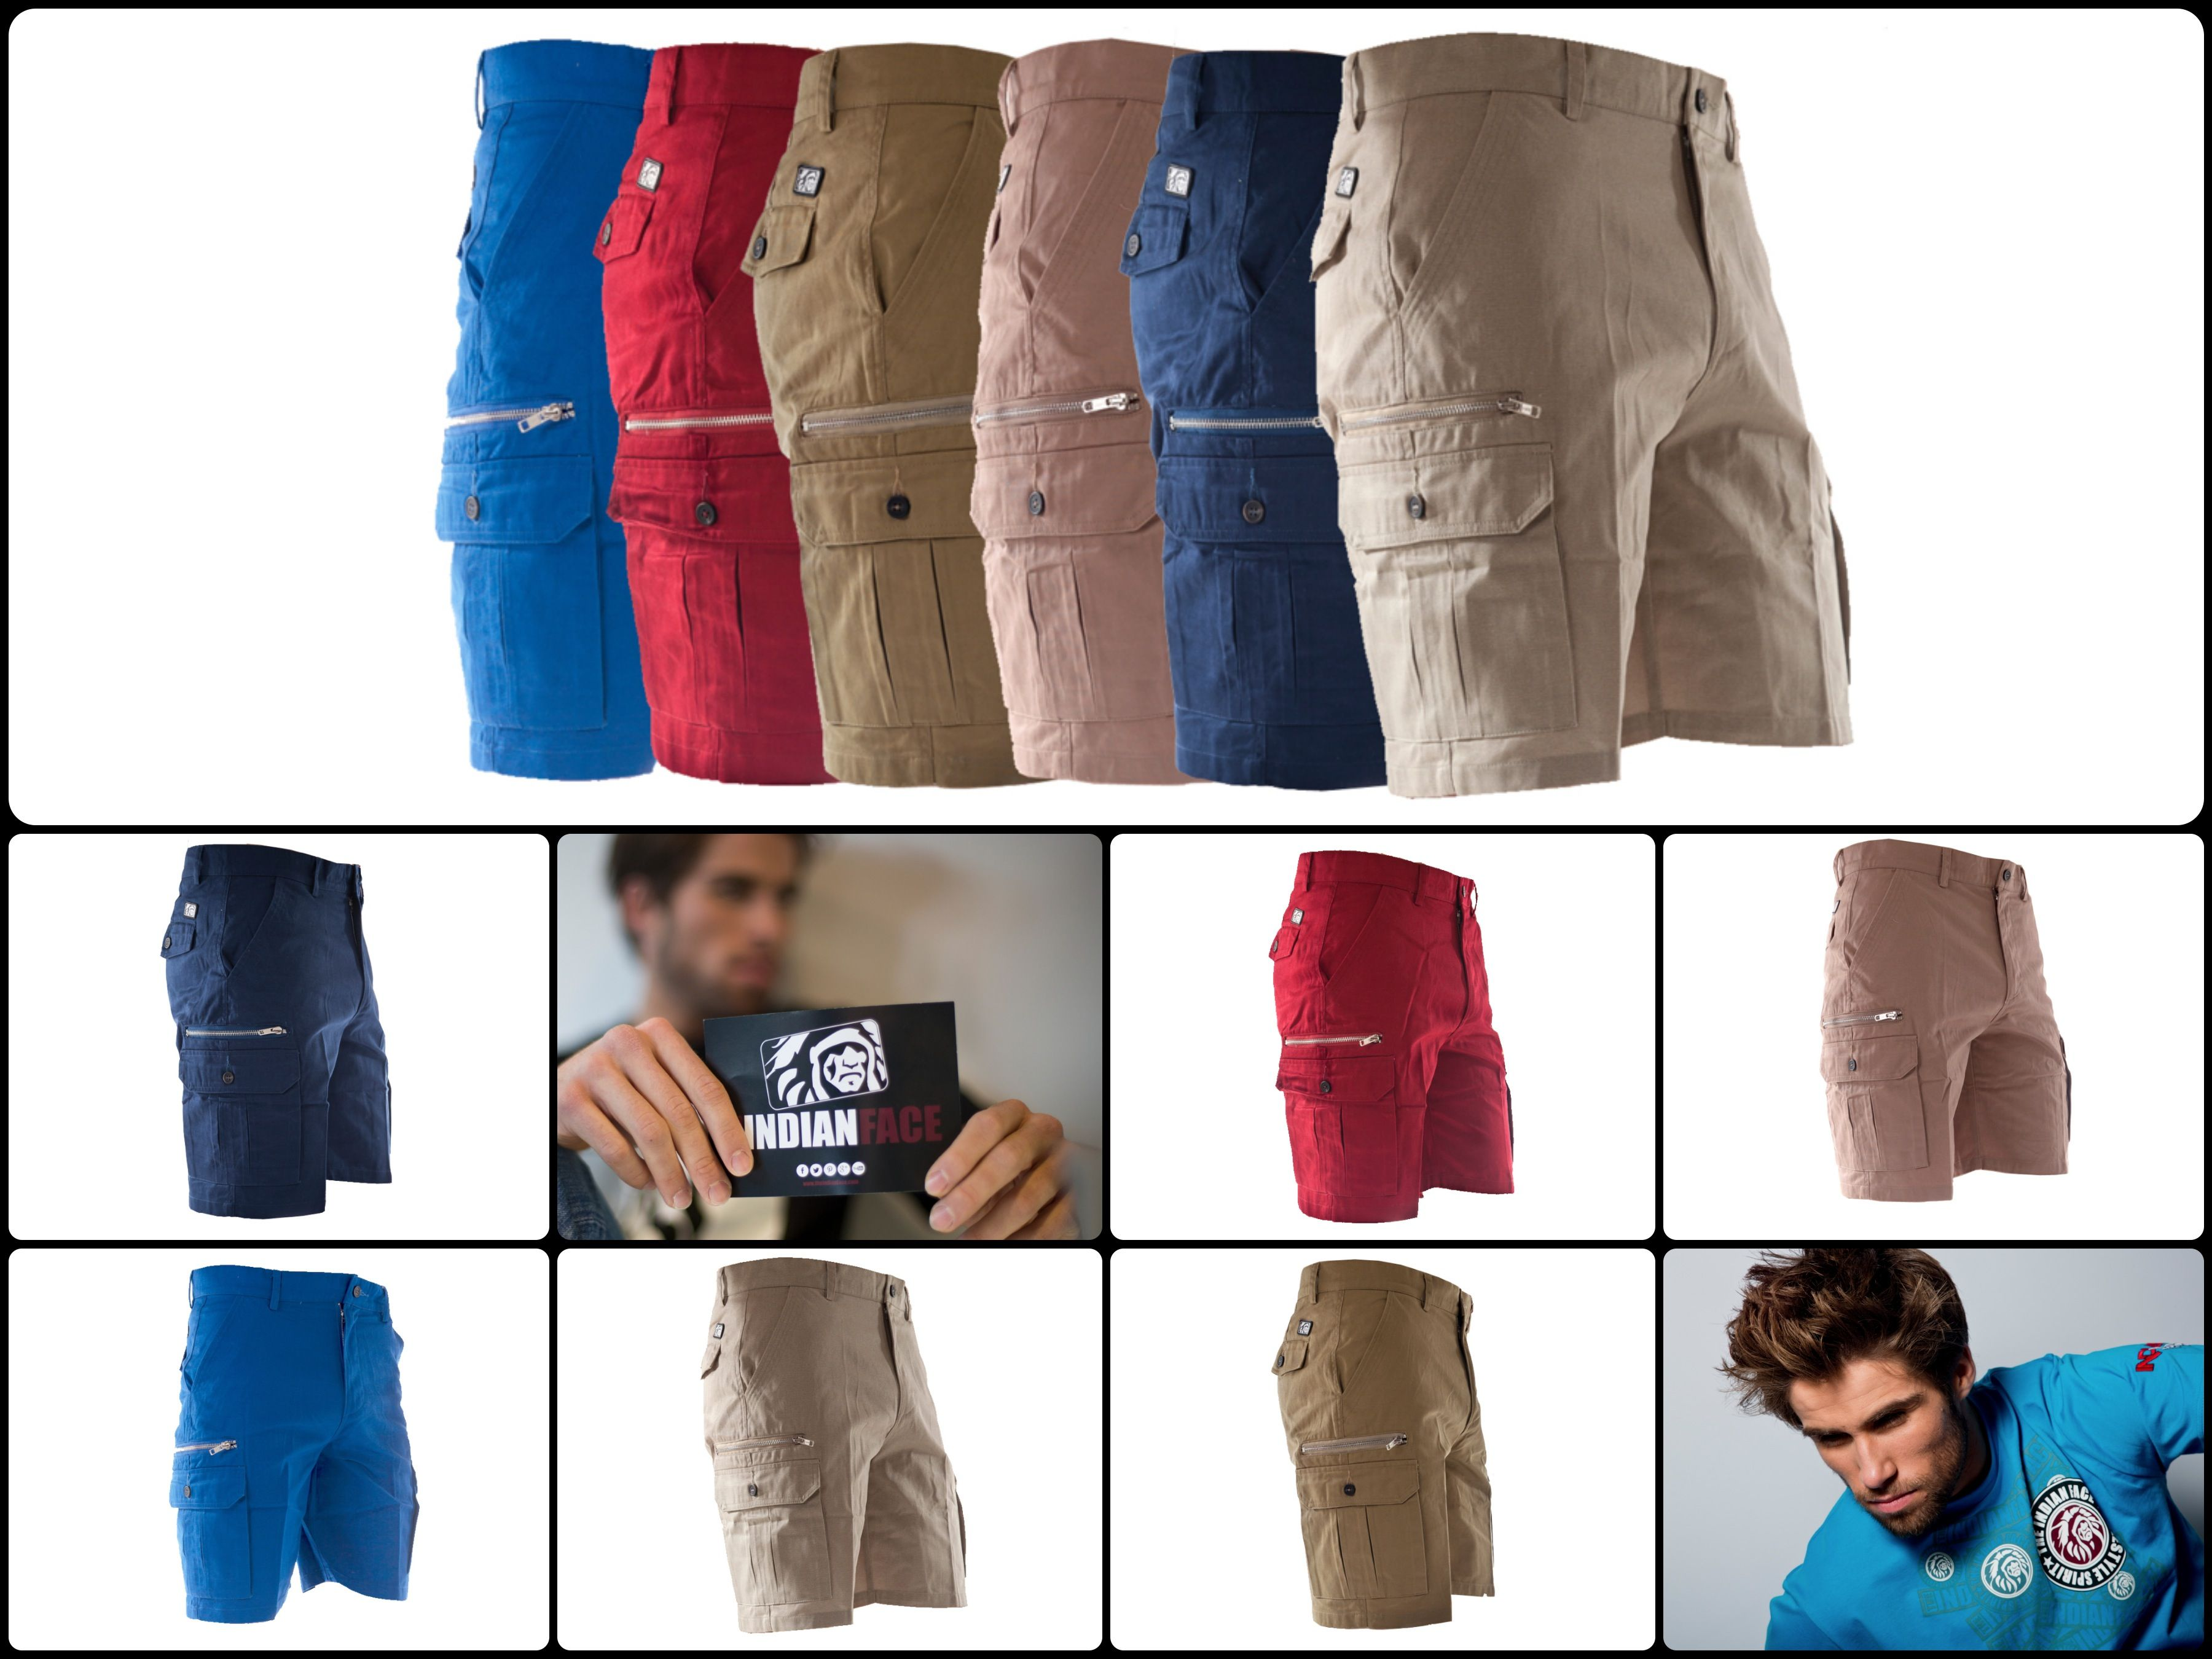 Bermudas The Indian Face http://www.theindianface.com/hombre/pantalones-cortos.html